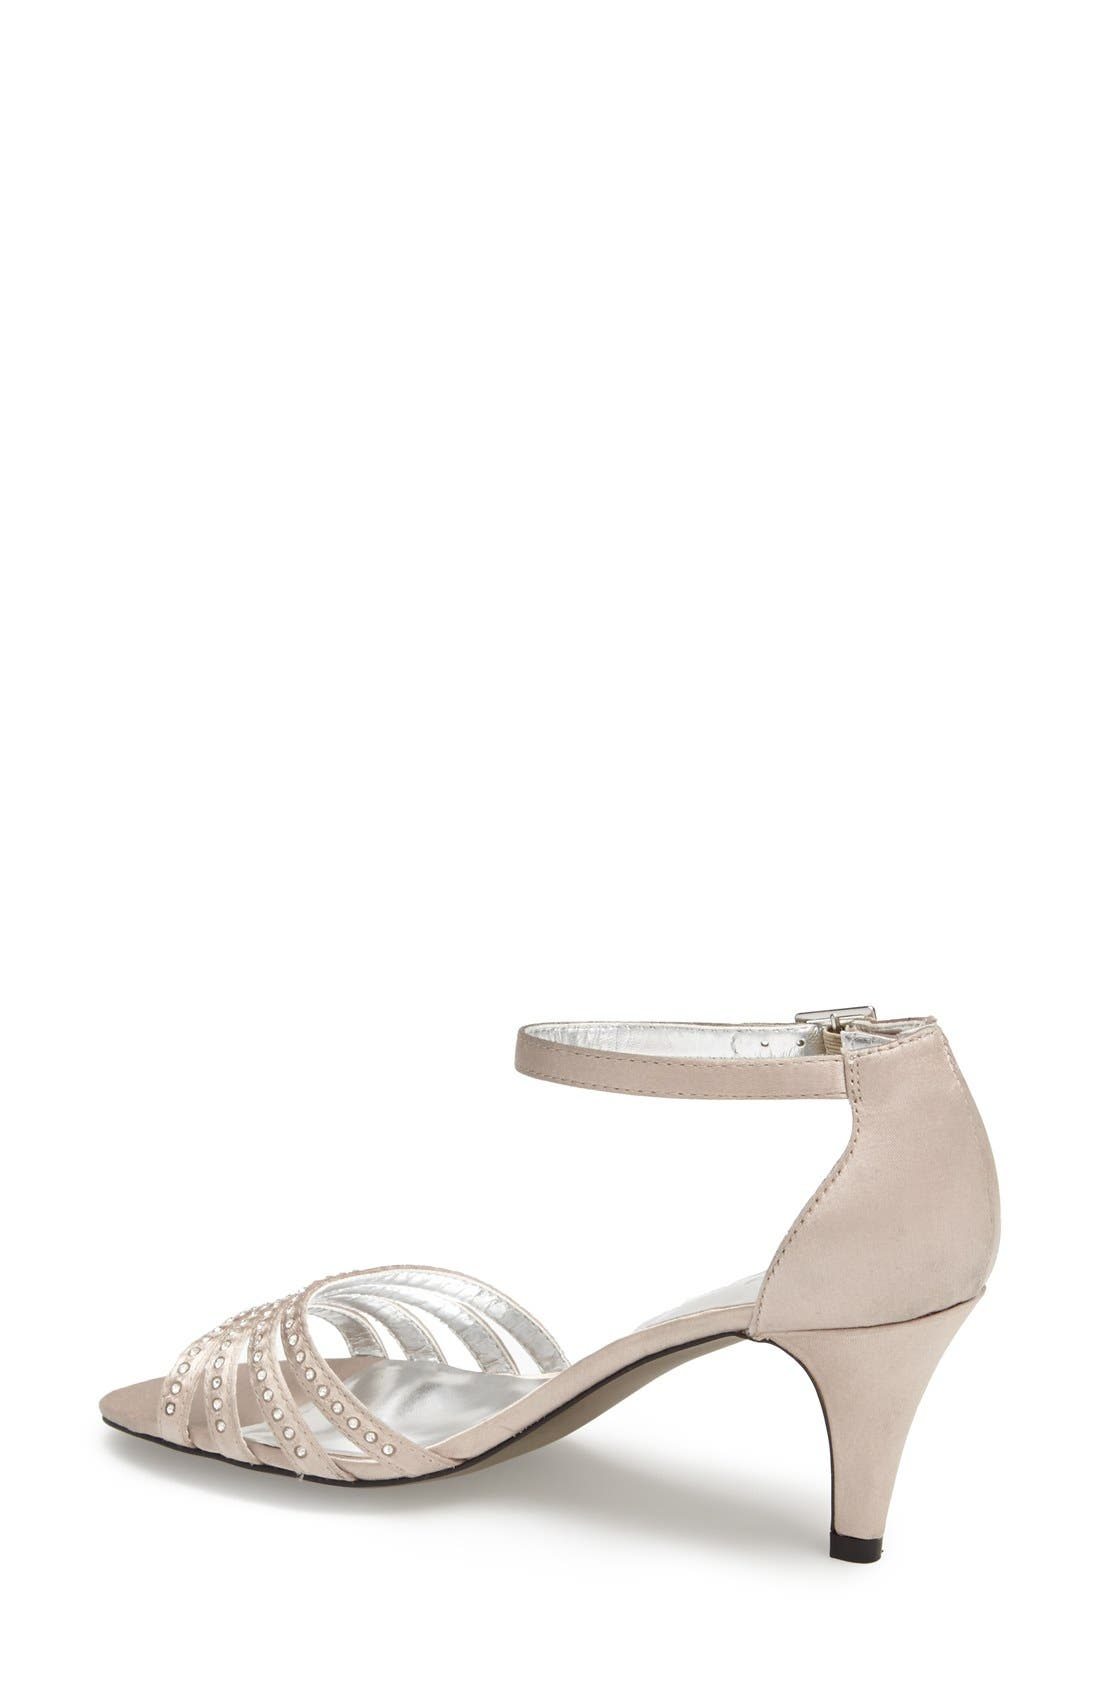 'Terra' Ankle Strap Sandal,                             Alternate thumbnail 6, color,                             CHAMPAGNE SATIN